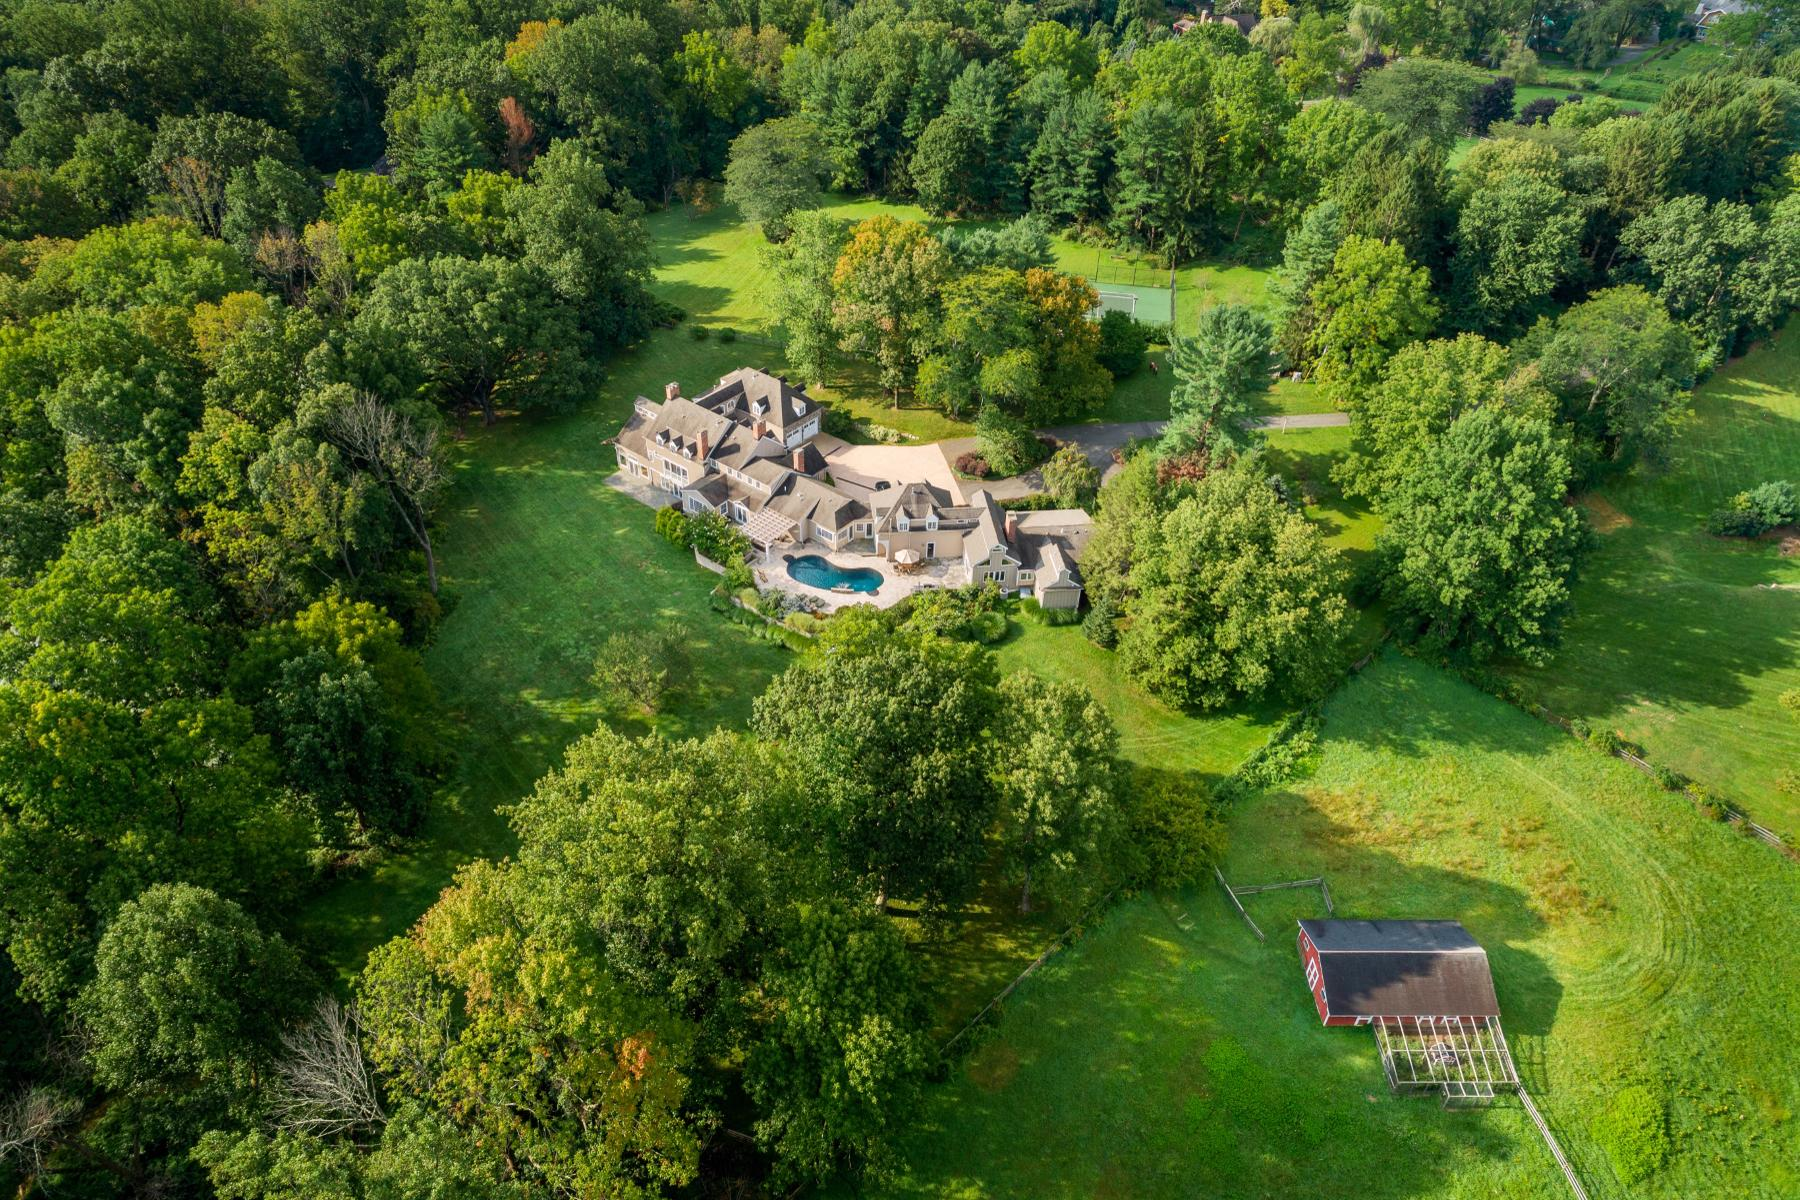 Single Family Homes for Sale at Country Compound Atop Bernardsville Mountain 329 & 331 Mendham Road, Bernardsville, New Jersey 07924 United States